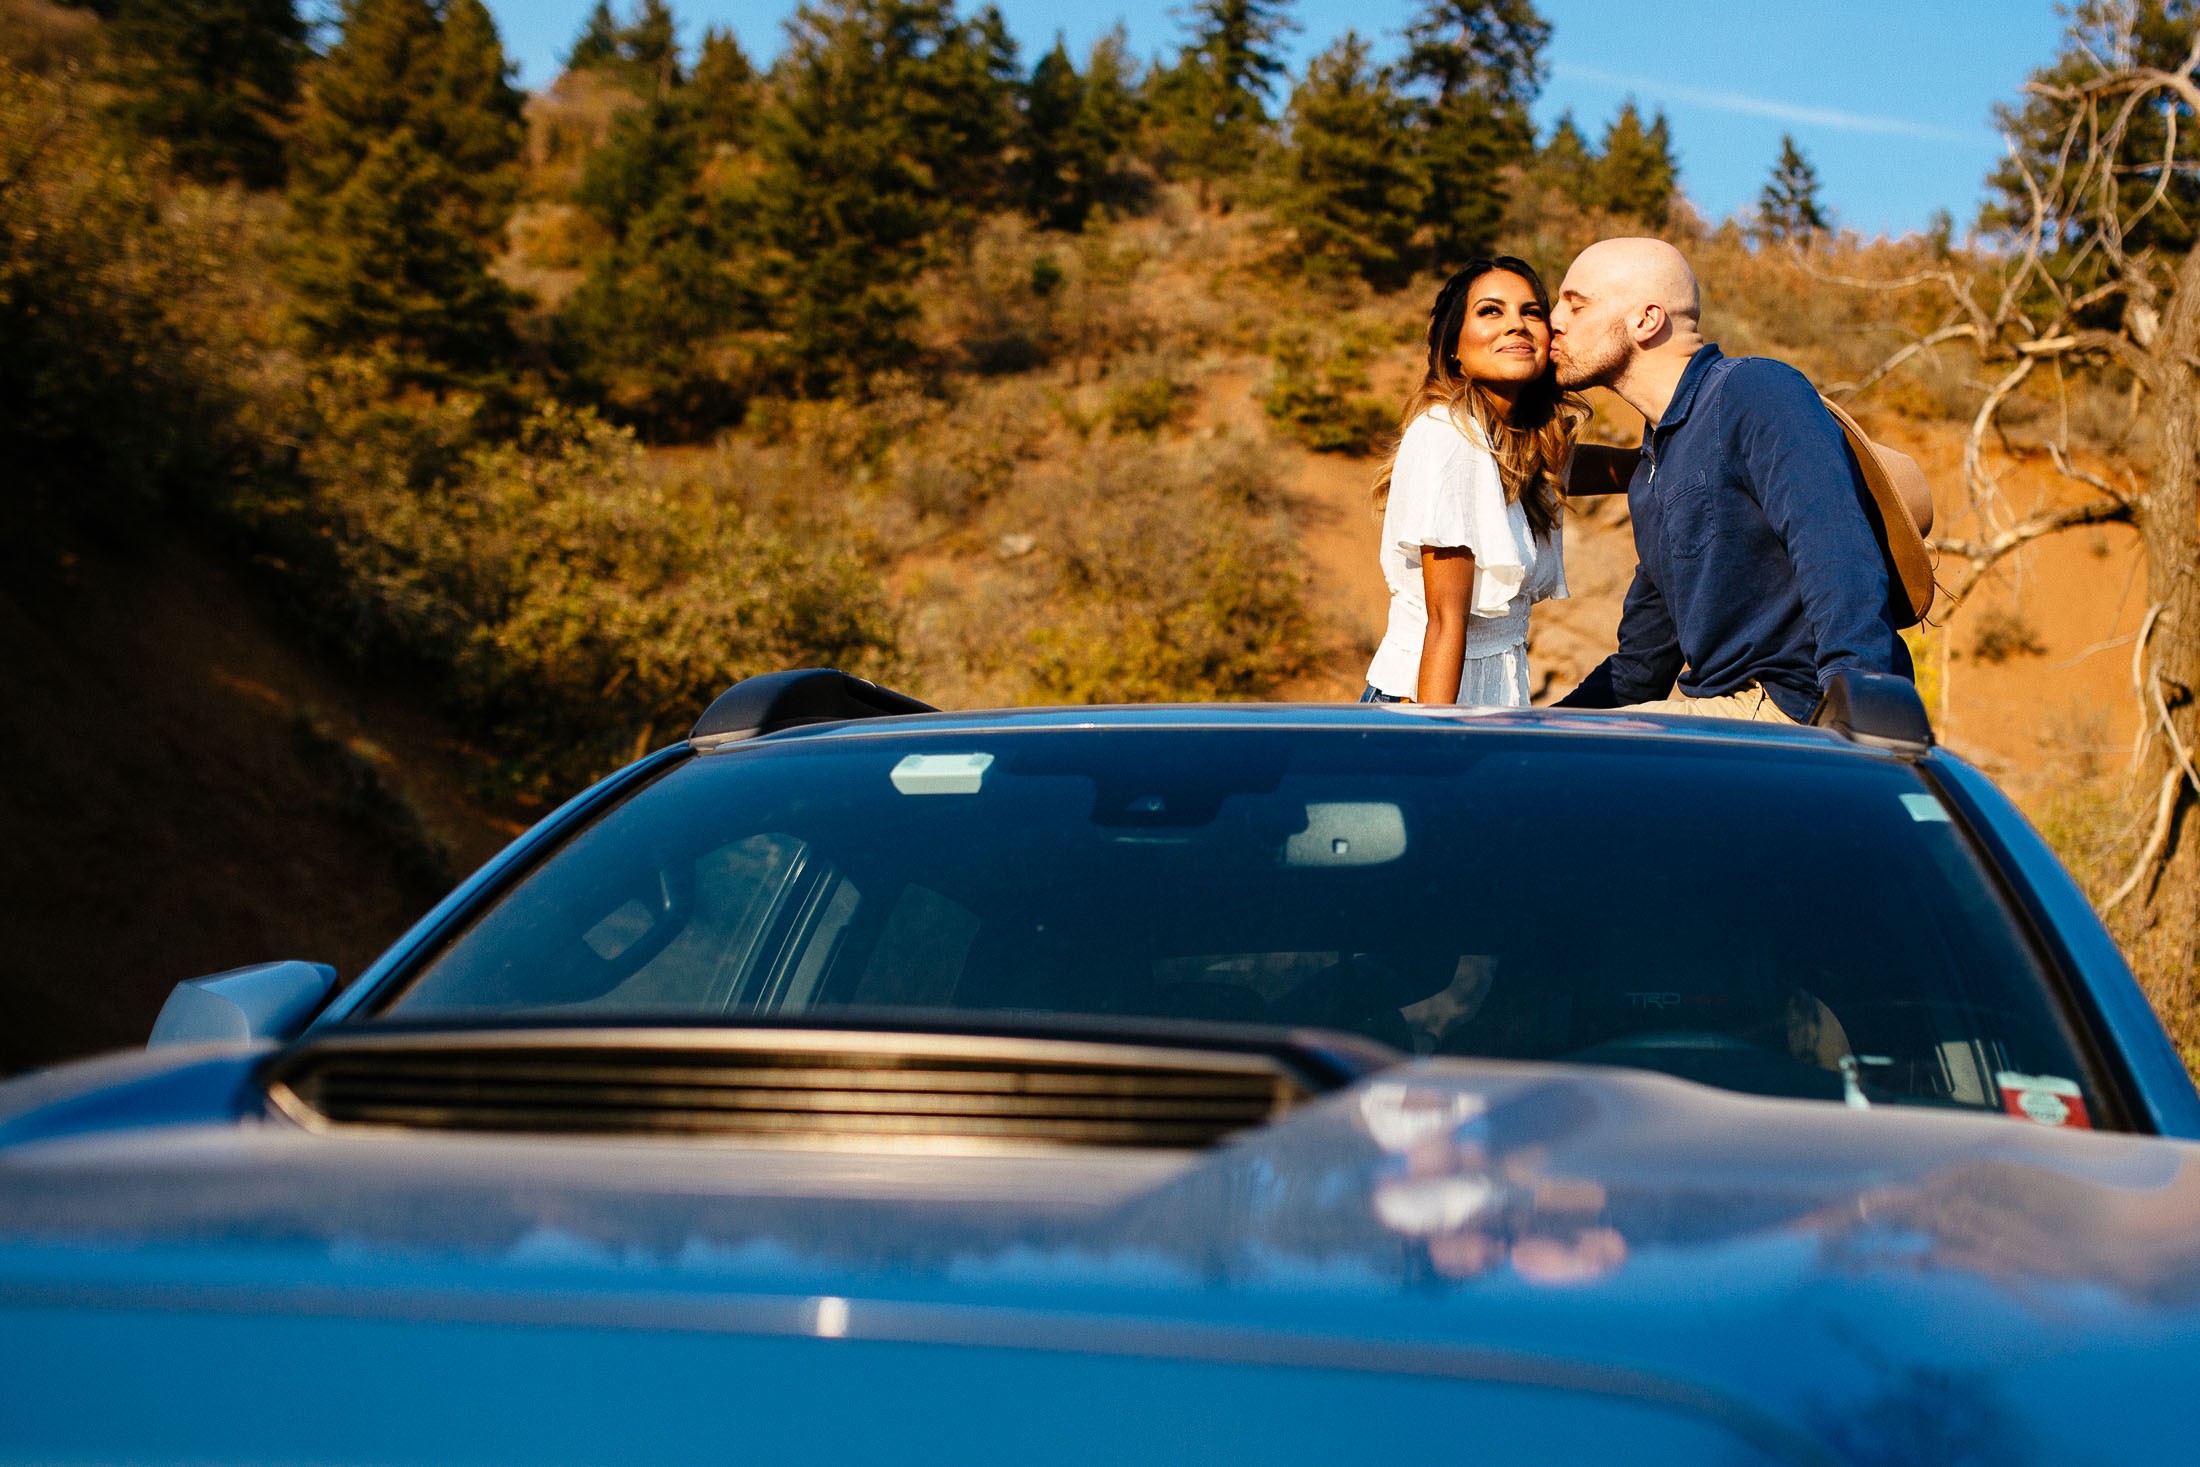 Couple sits on top of a car and kisses.